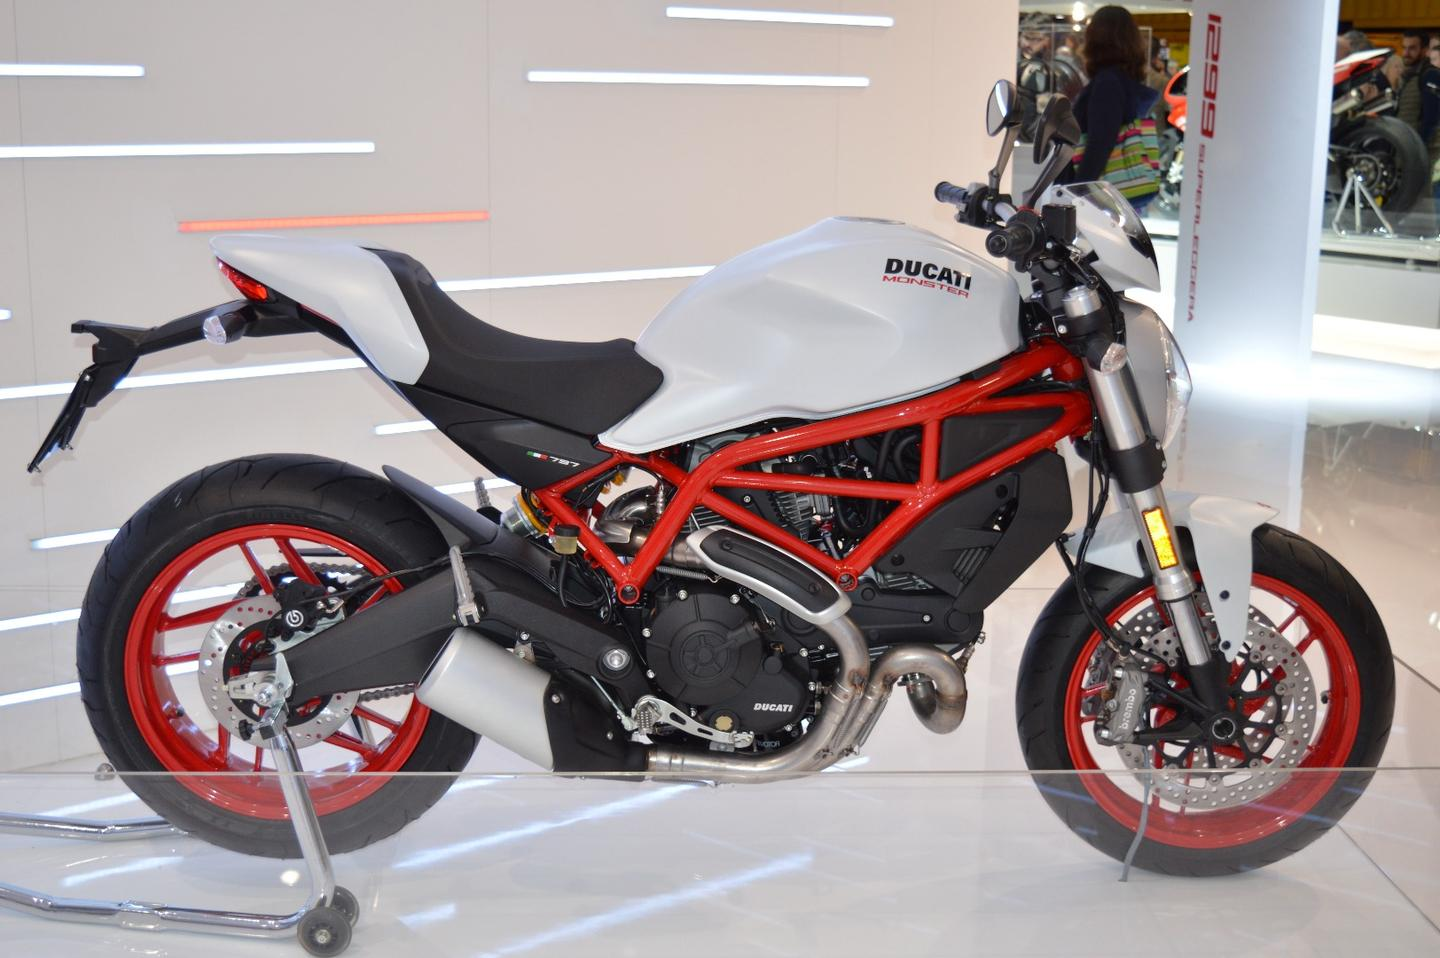 The new Ducati Monster 797 at EICMA